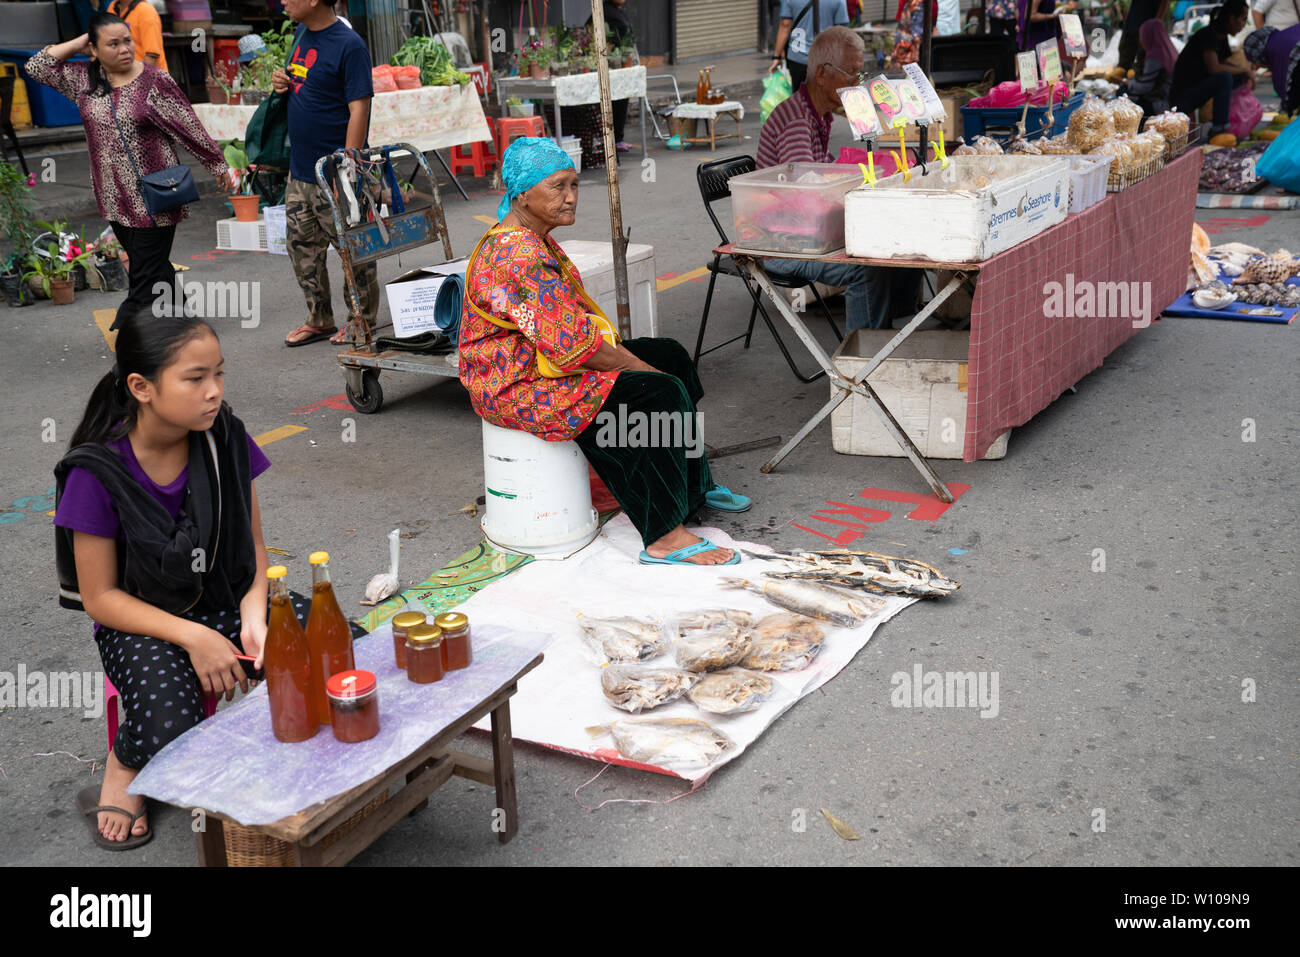 KOTA KINABULU, BORNEO - JUNE 2  PACKS PRODUCT FOR CUSTOMER.  Kota Kinabalu Sunday market seller at their stall sitting waiting for buyers. - Stock Image